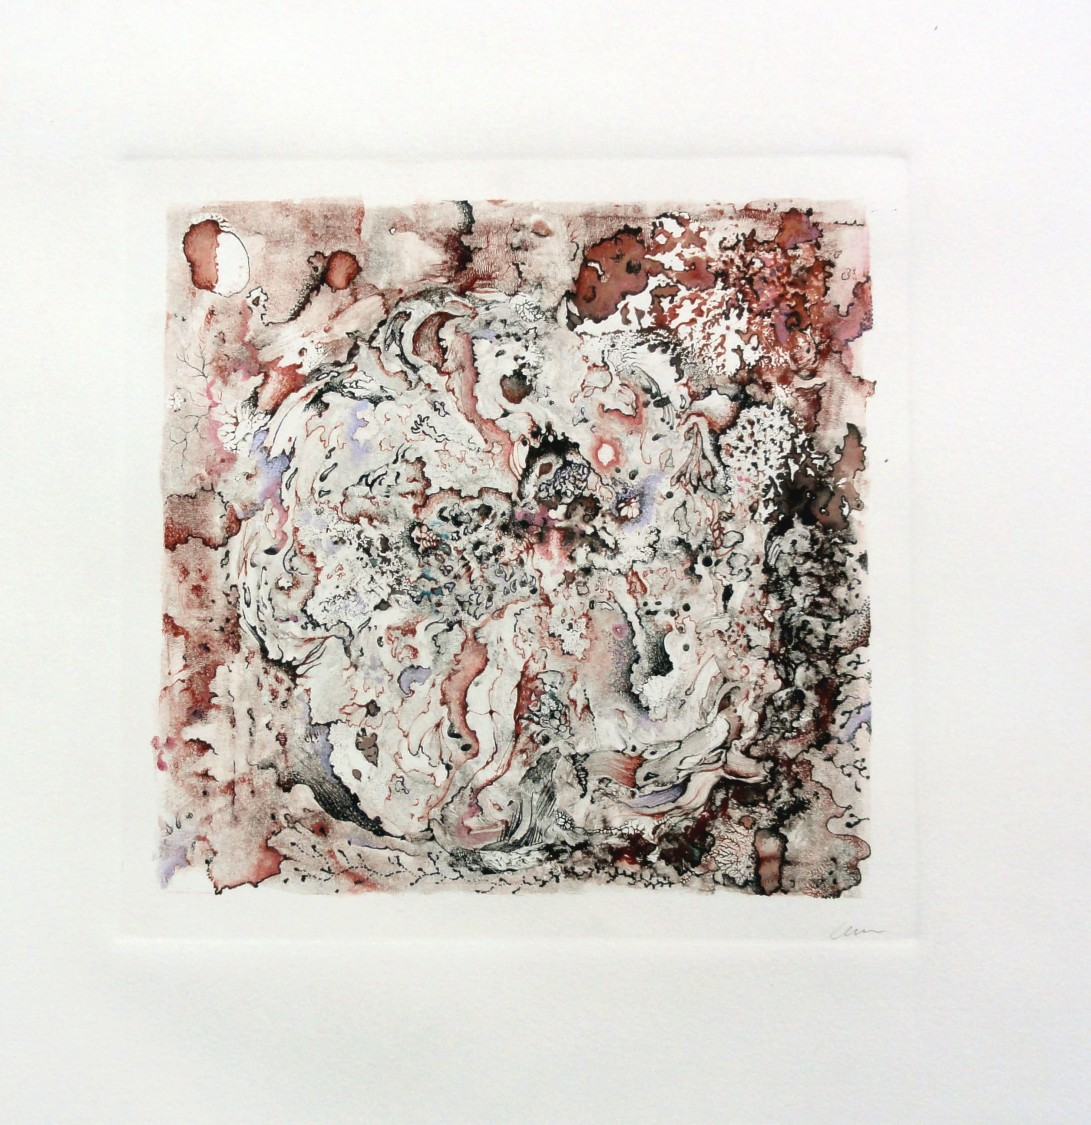 Creature Moon, 2012, 12x12inch., 30.5x30.5cm, Monoprint, pen and watercolor on paper